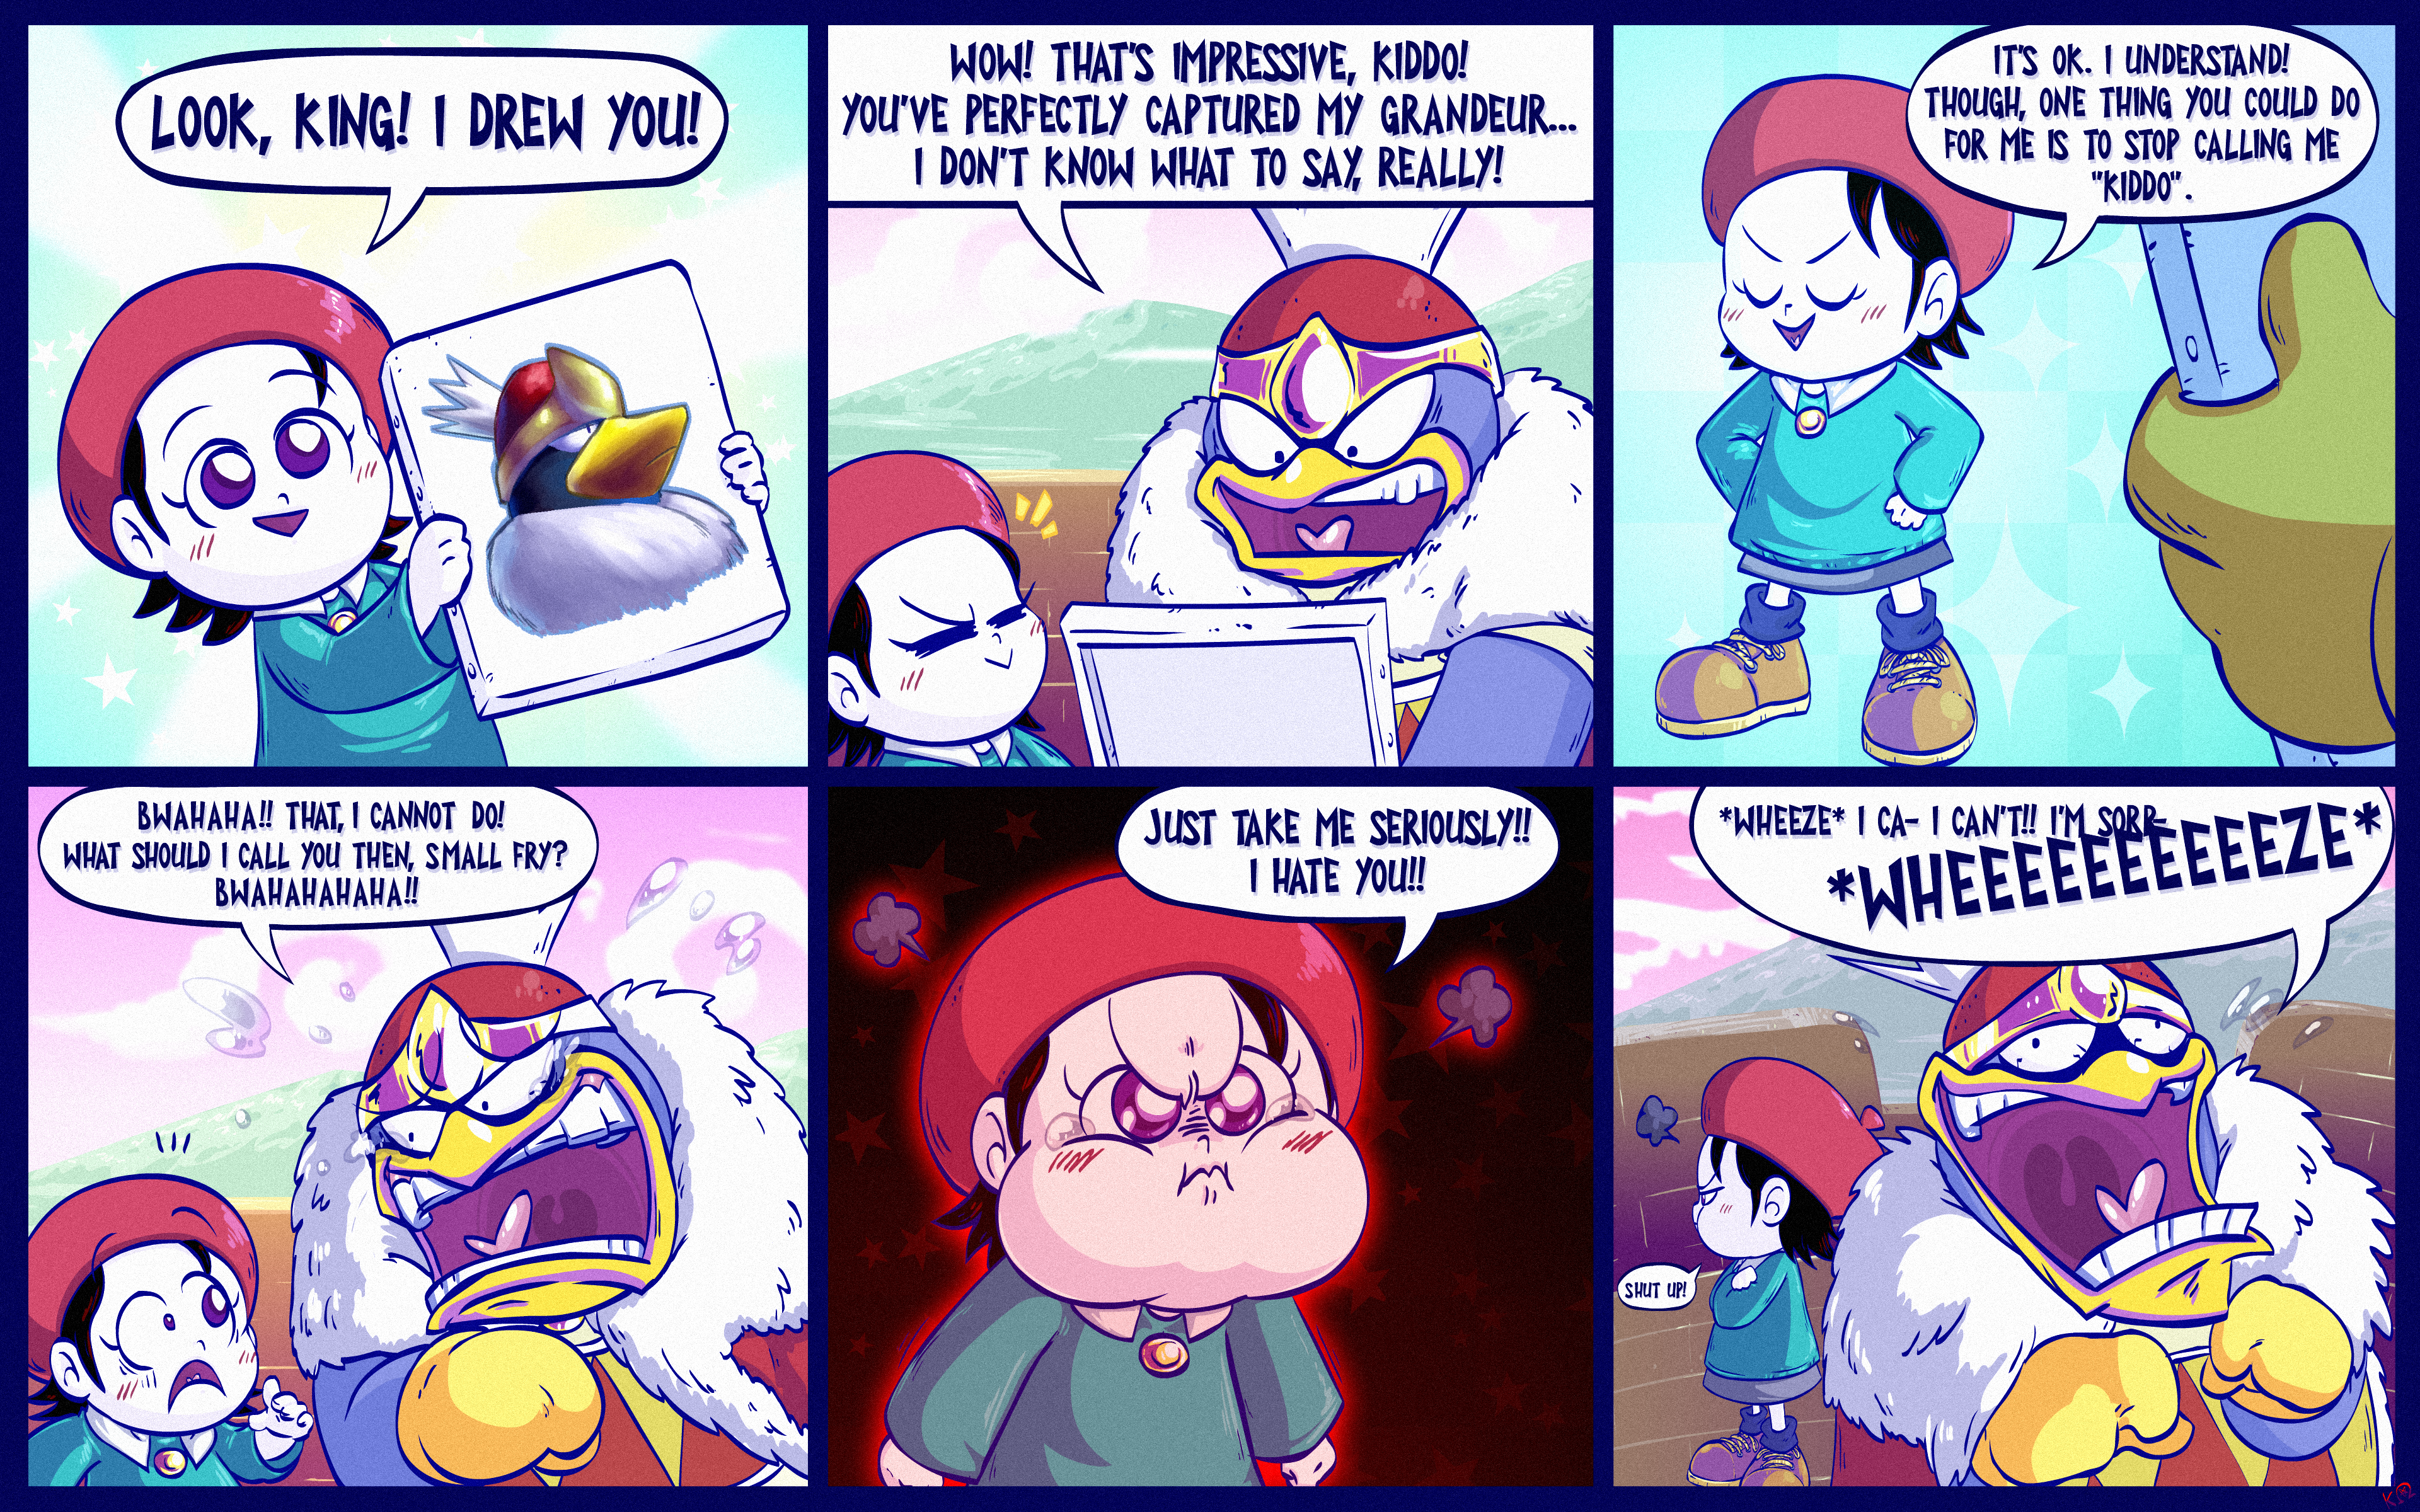 Kirby Guardian Comic 5: A gift for King